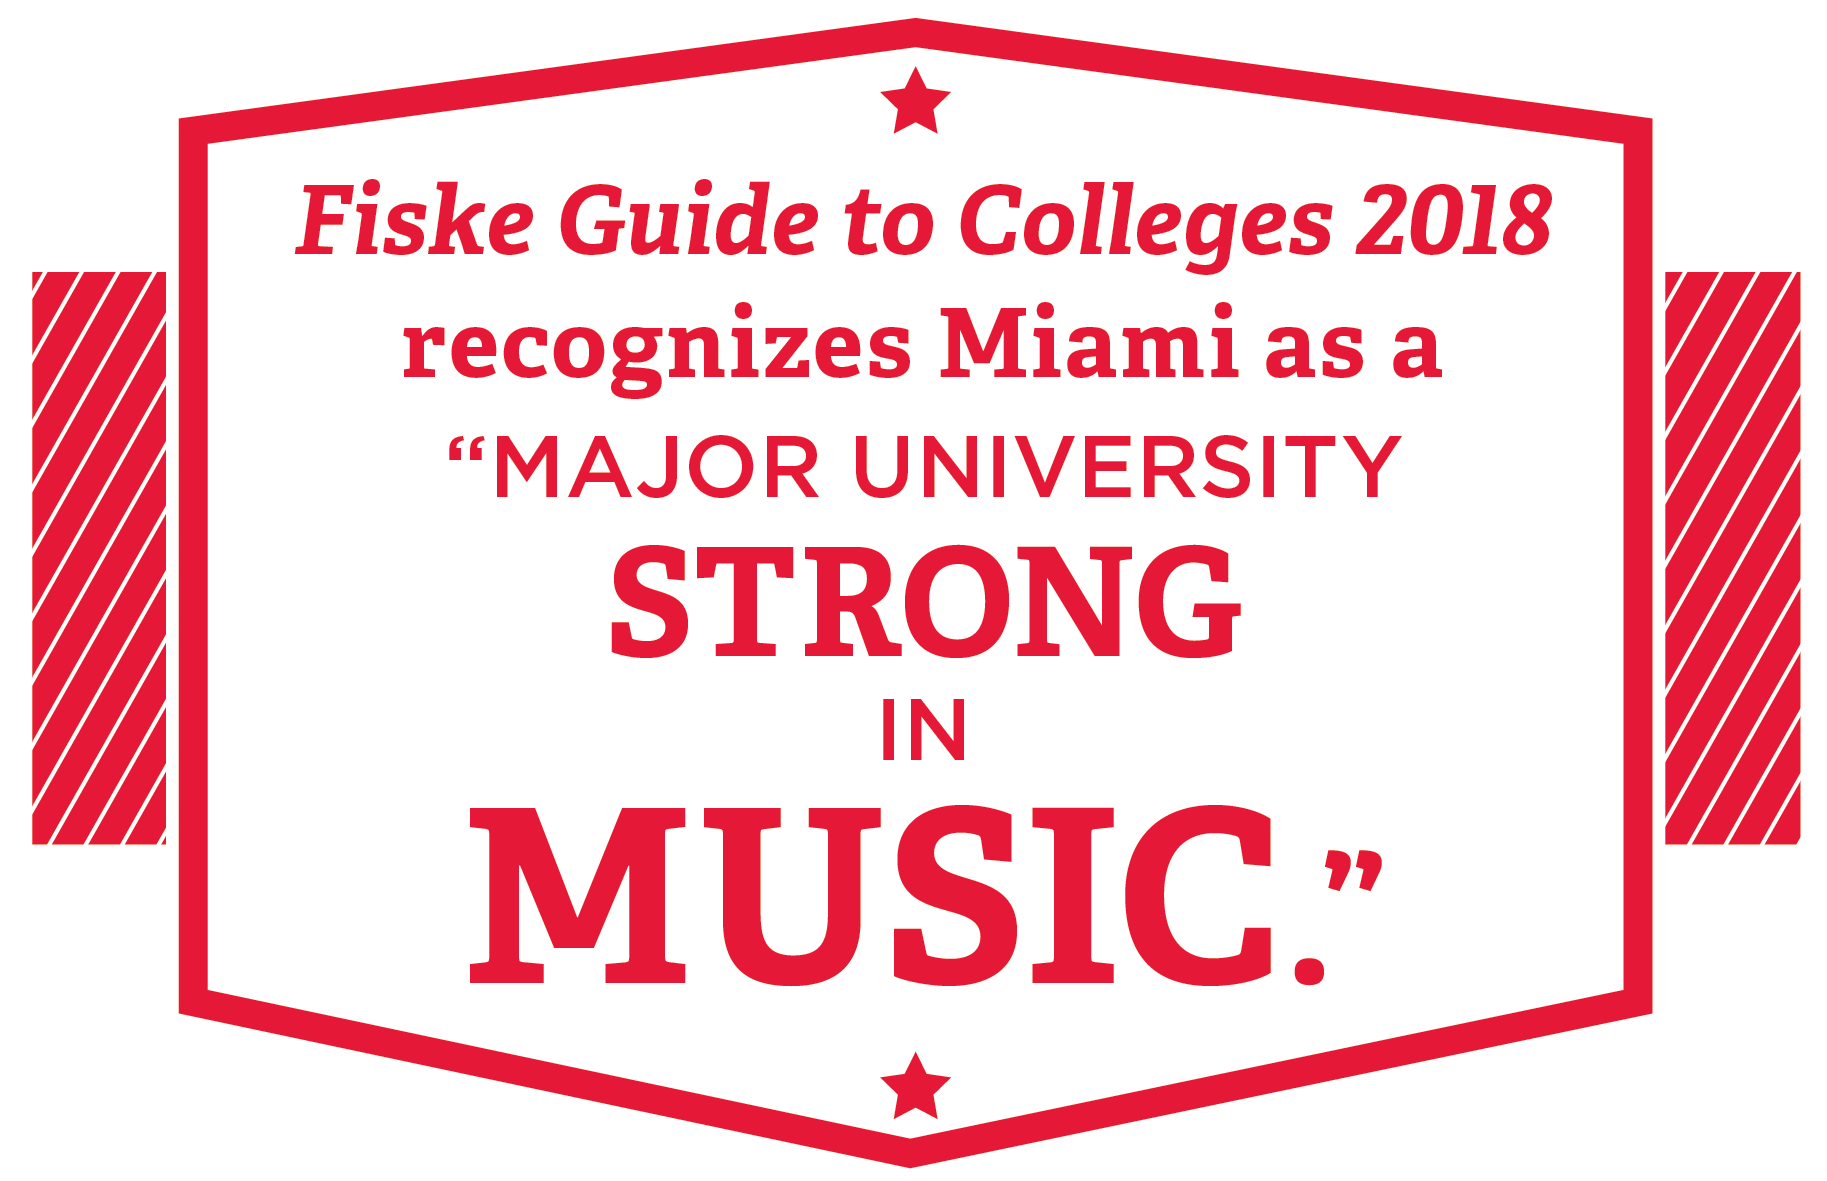 Fiske Guide to Colleges 2018 recognizes Miami as a 'major university strong in music'